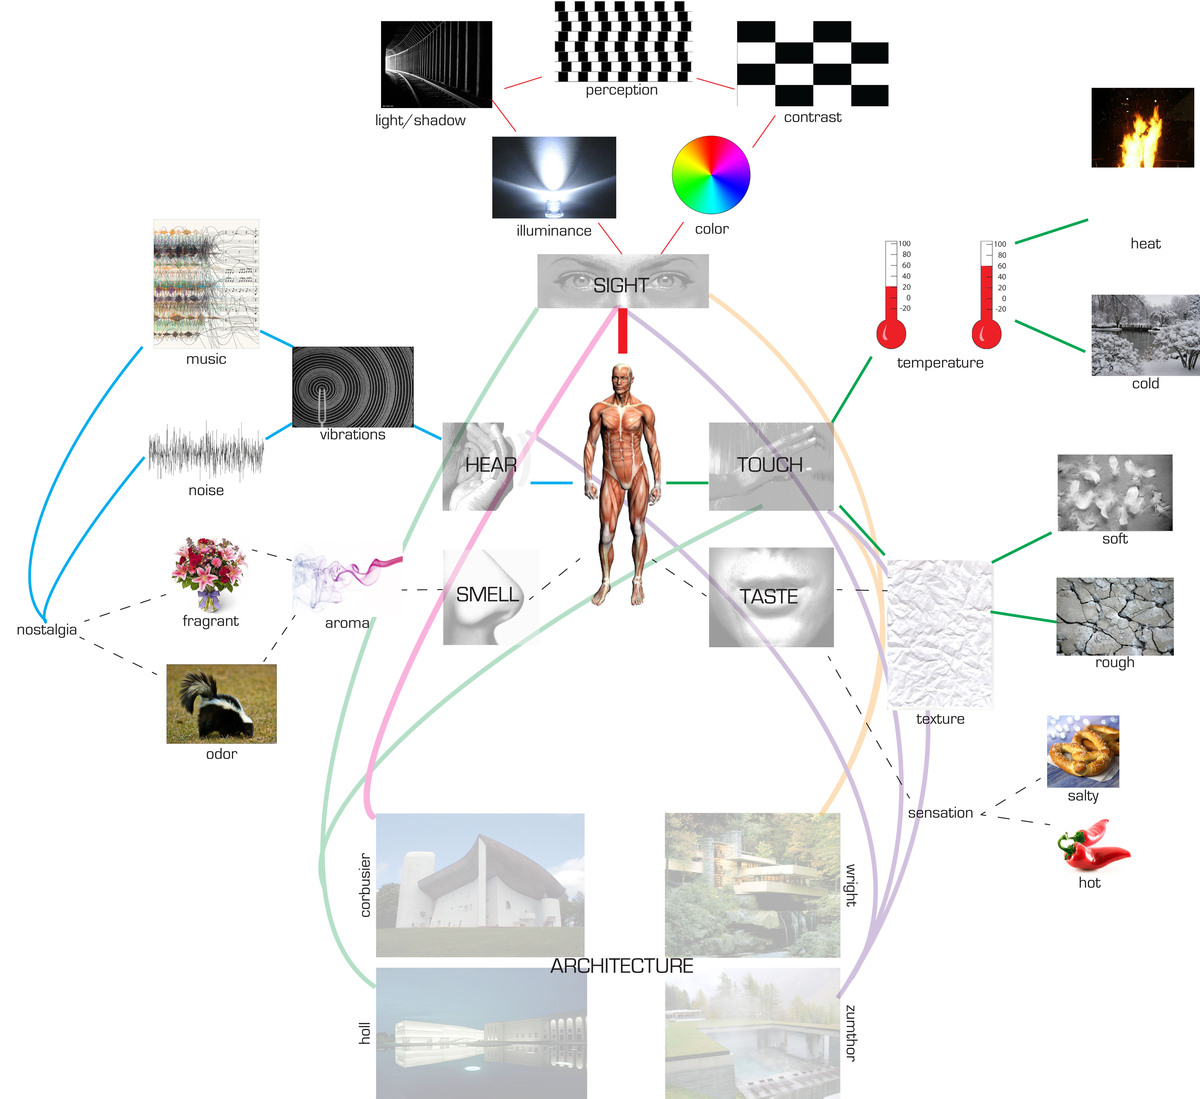 collage begins analyzing how the body uses its senses